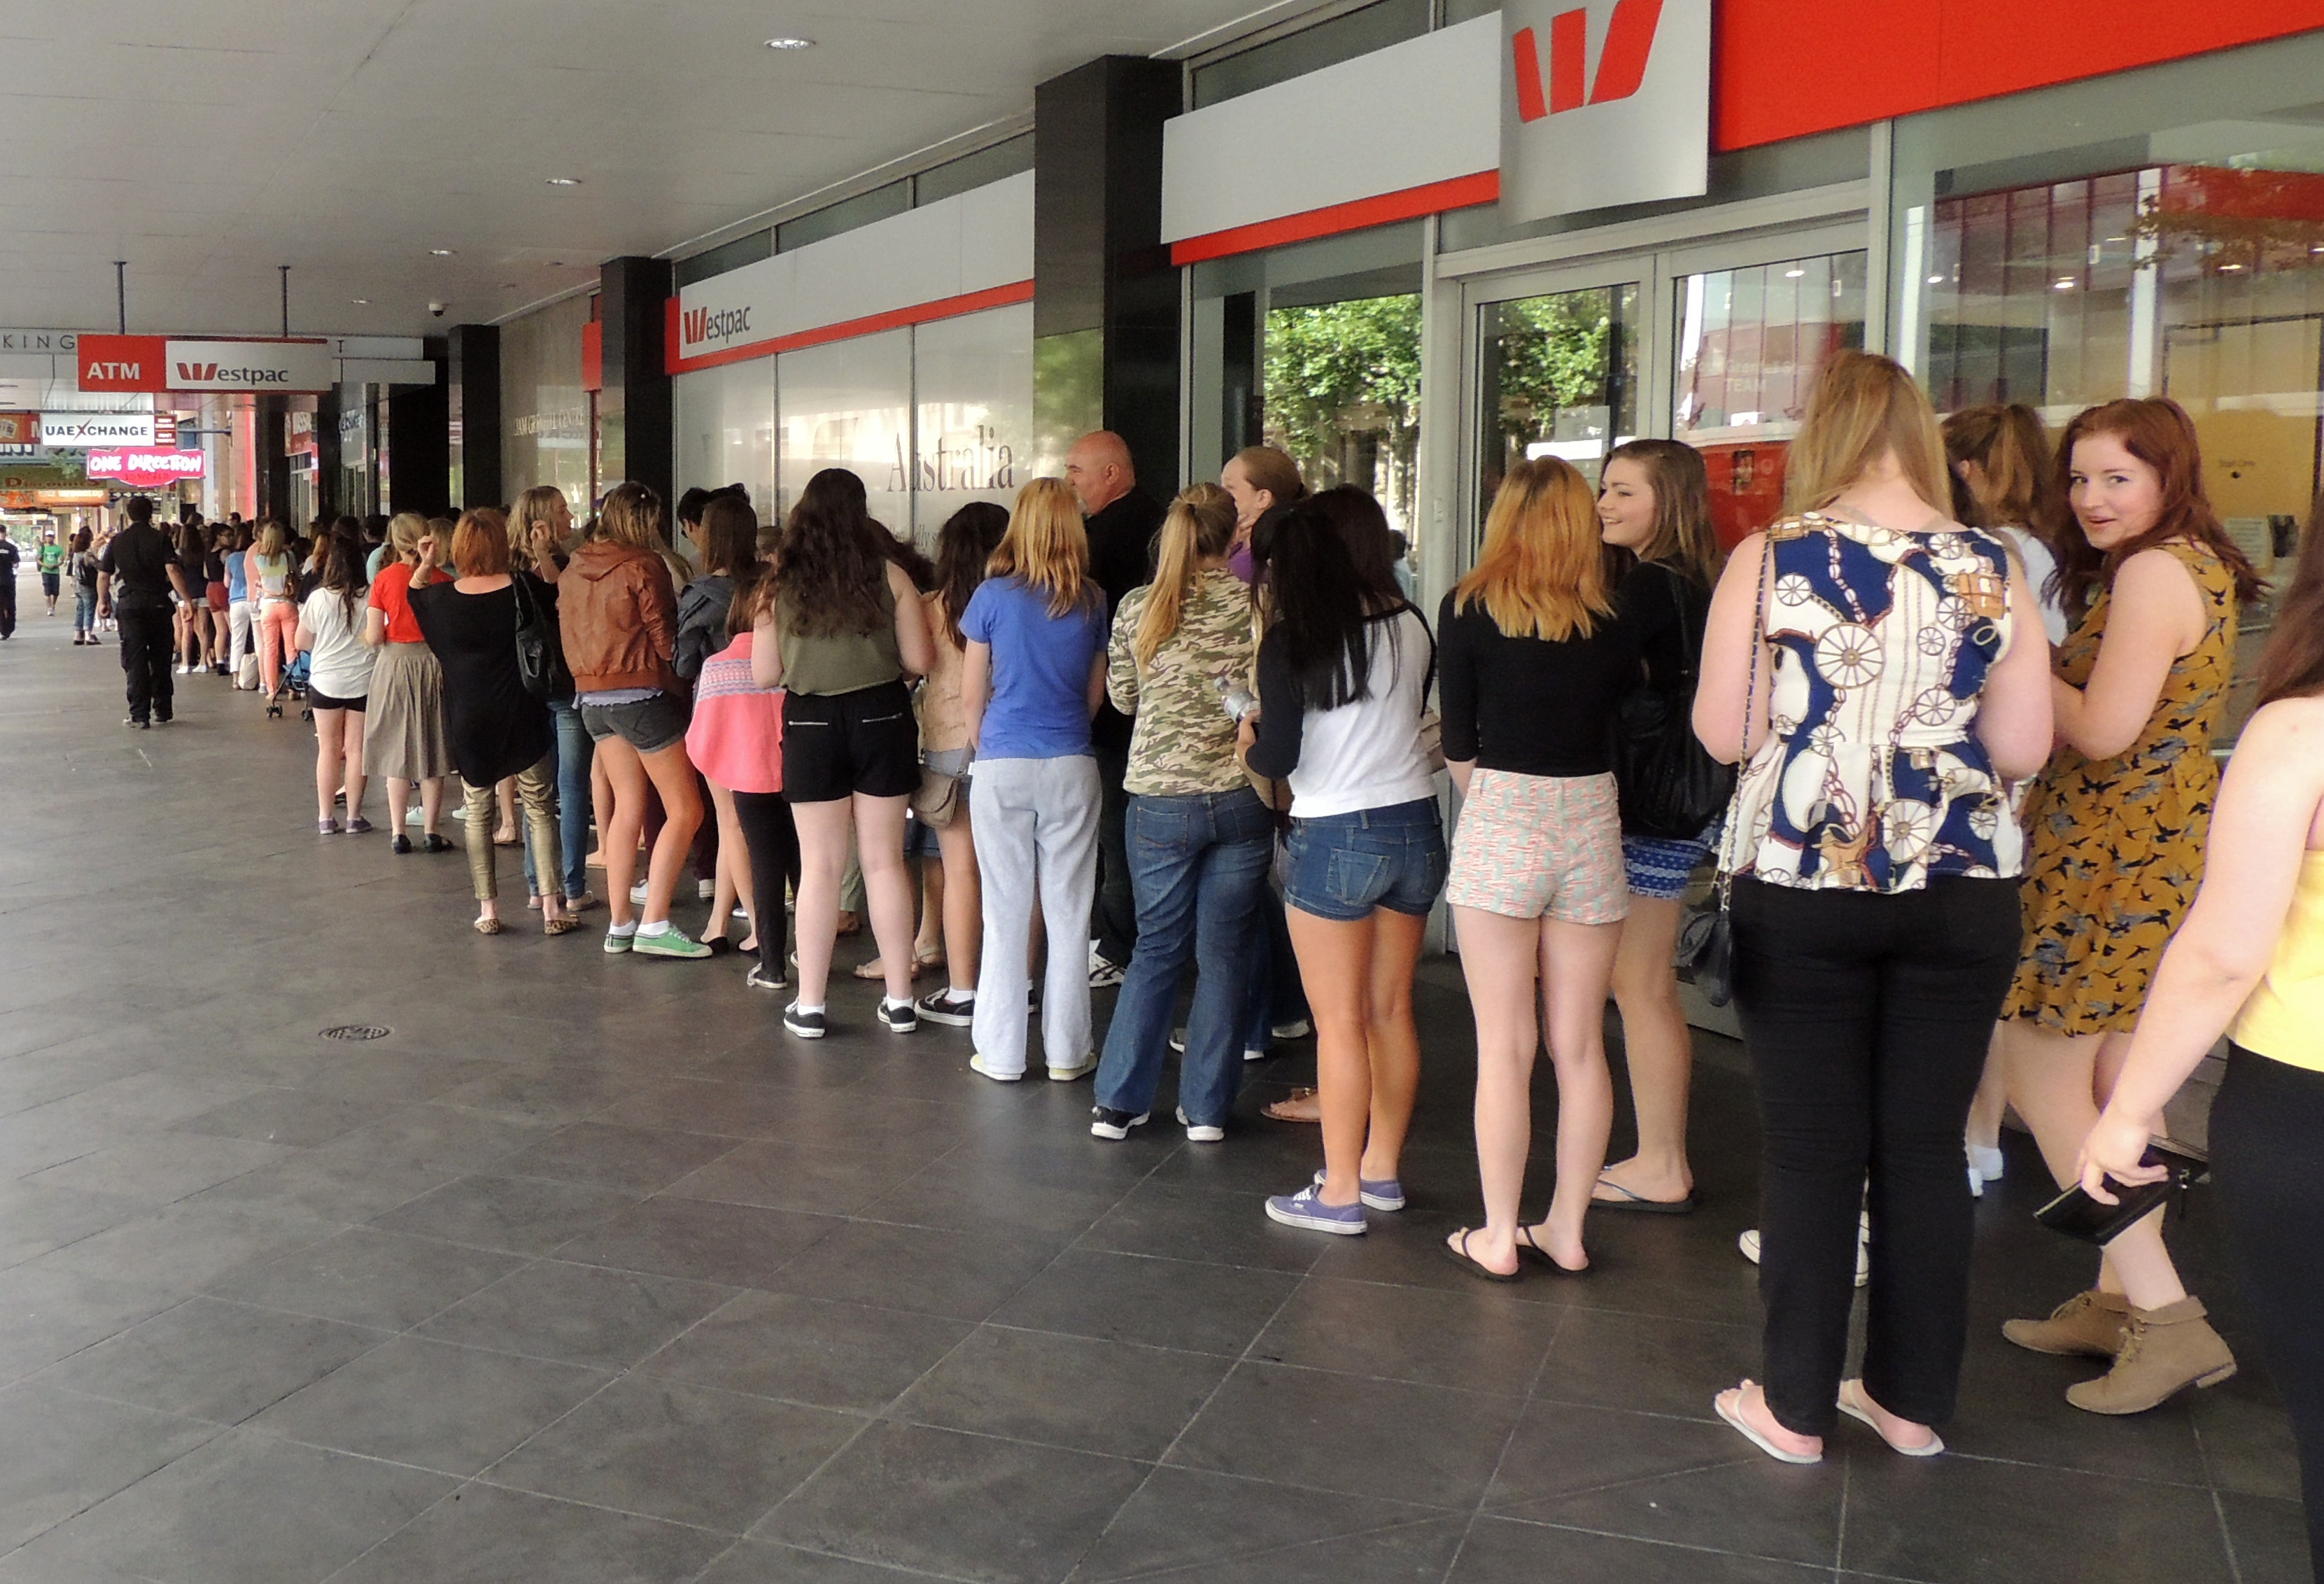 1d world one direction store adelaide adelaide the one direction queue large image m4hsunfo